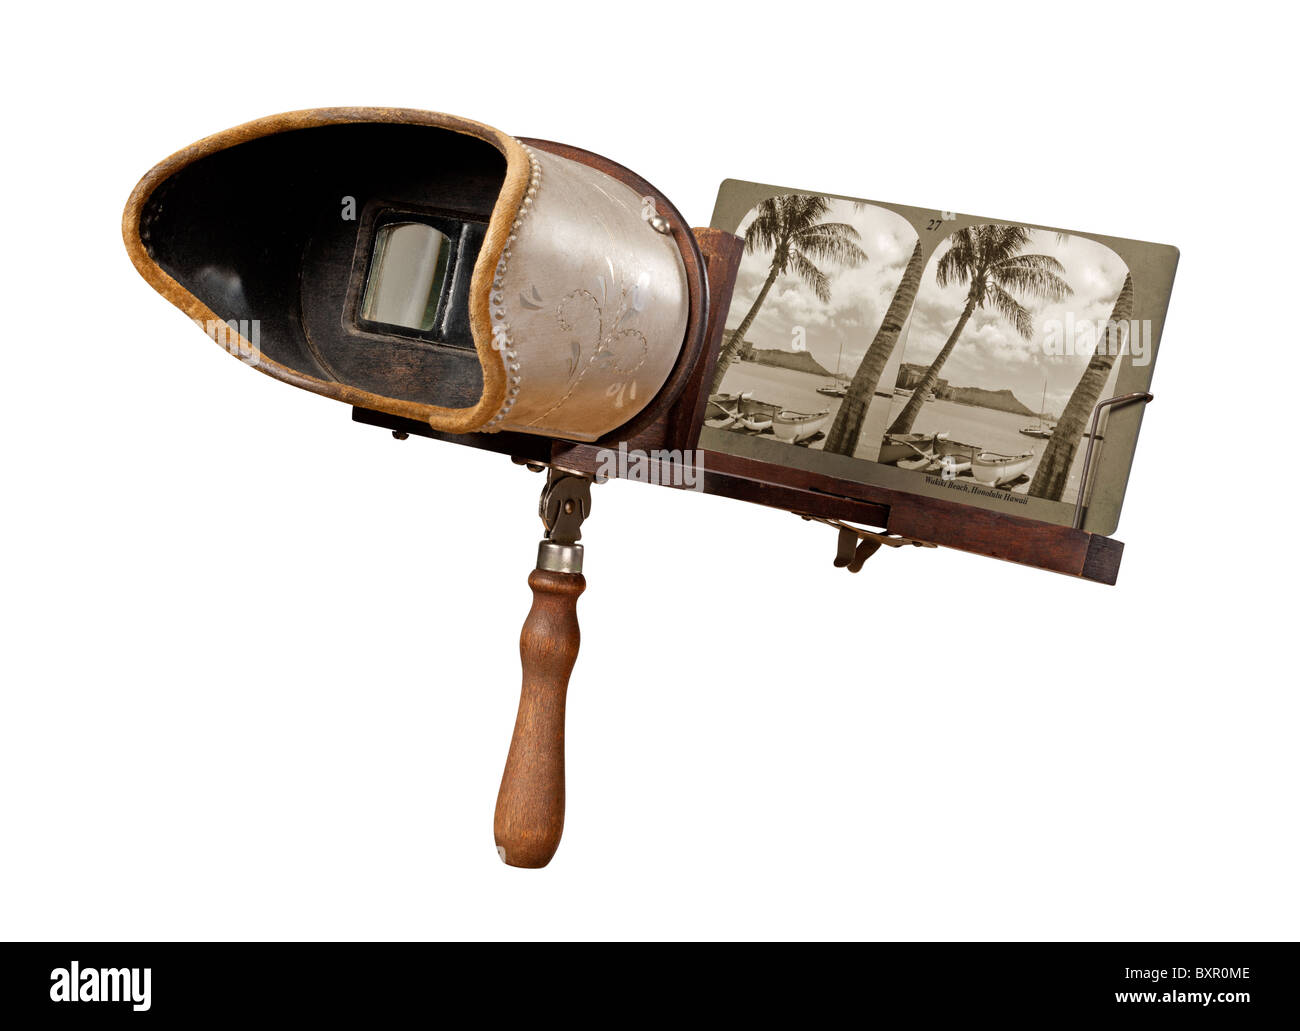 Antique Stereograph Isolated on a white background. - Stock Image